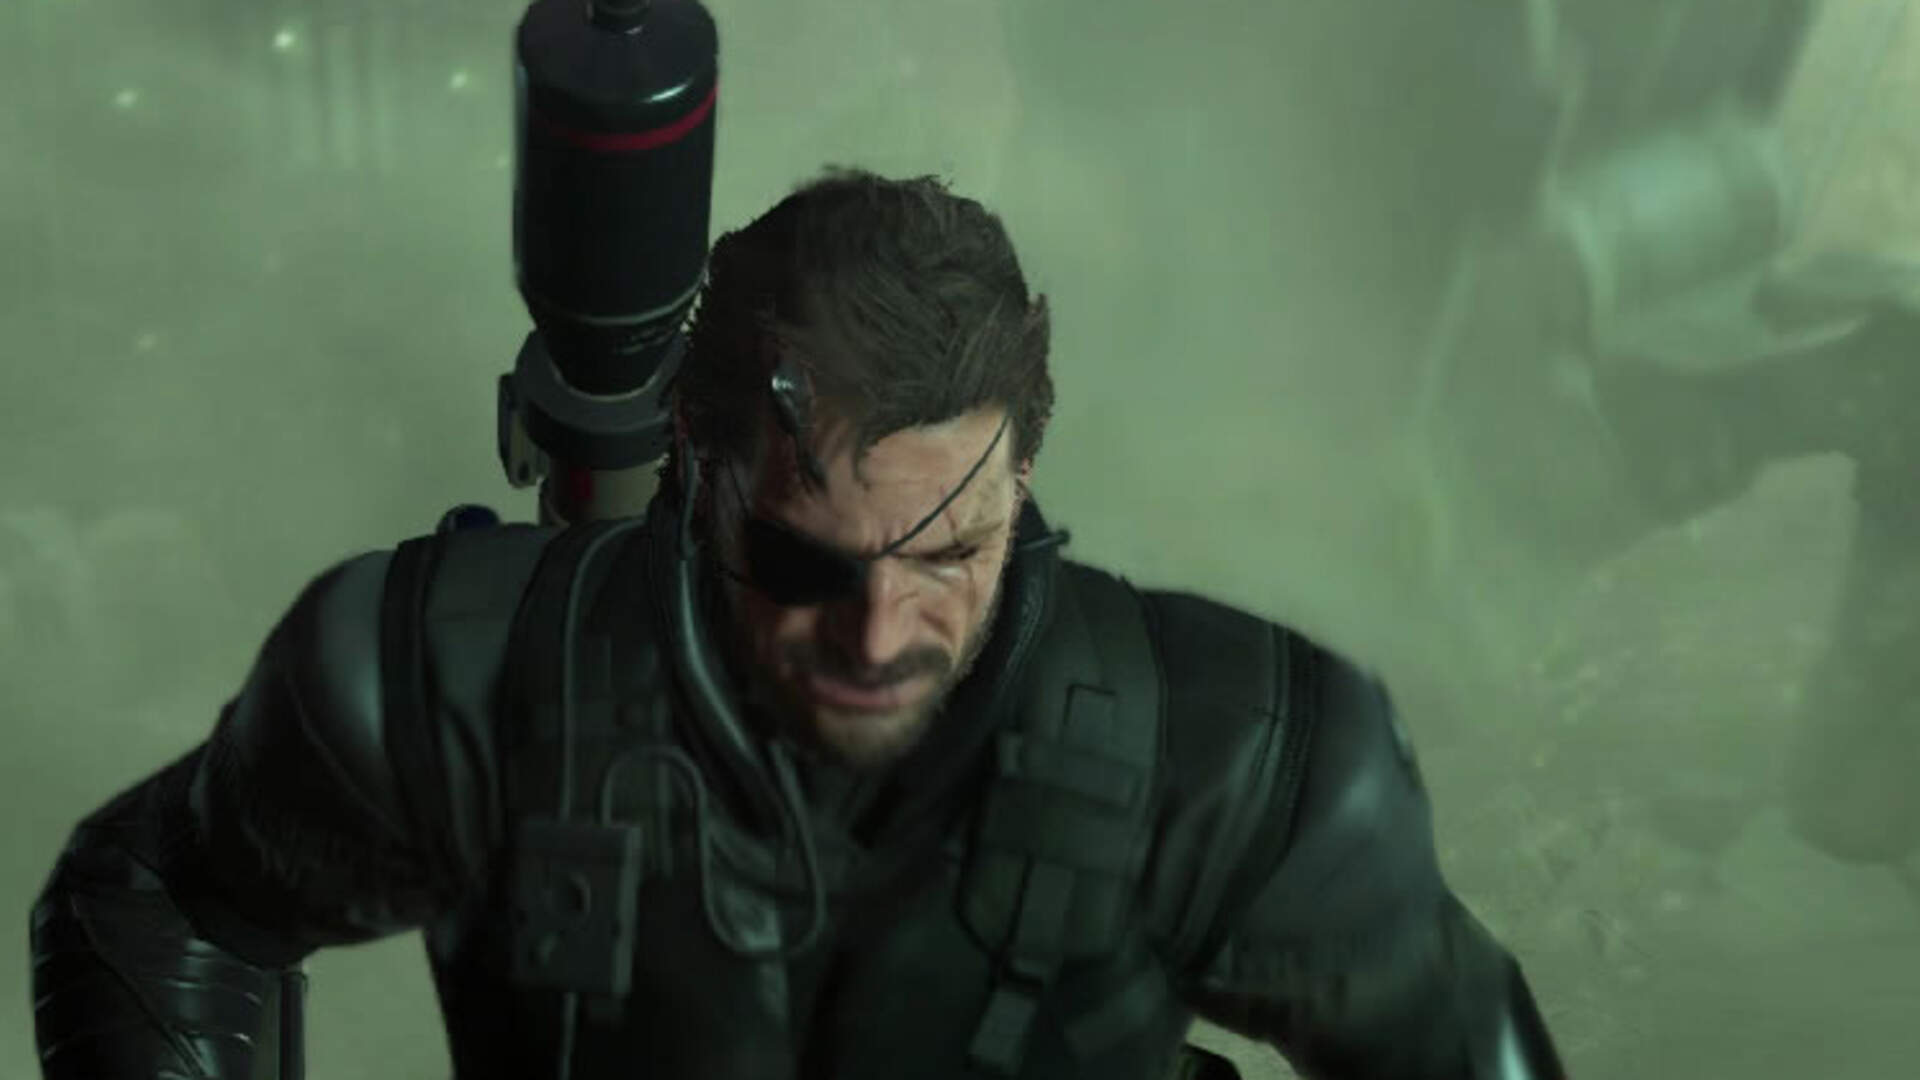 Metal Gear Solid 5 - Traitor's Caravan Mission Guide - Mission 16 Walkthrough - How to get an S Rank